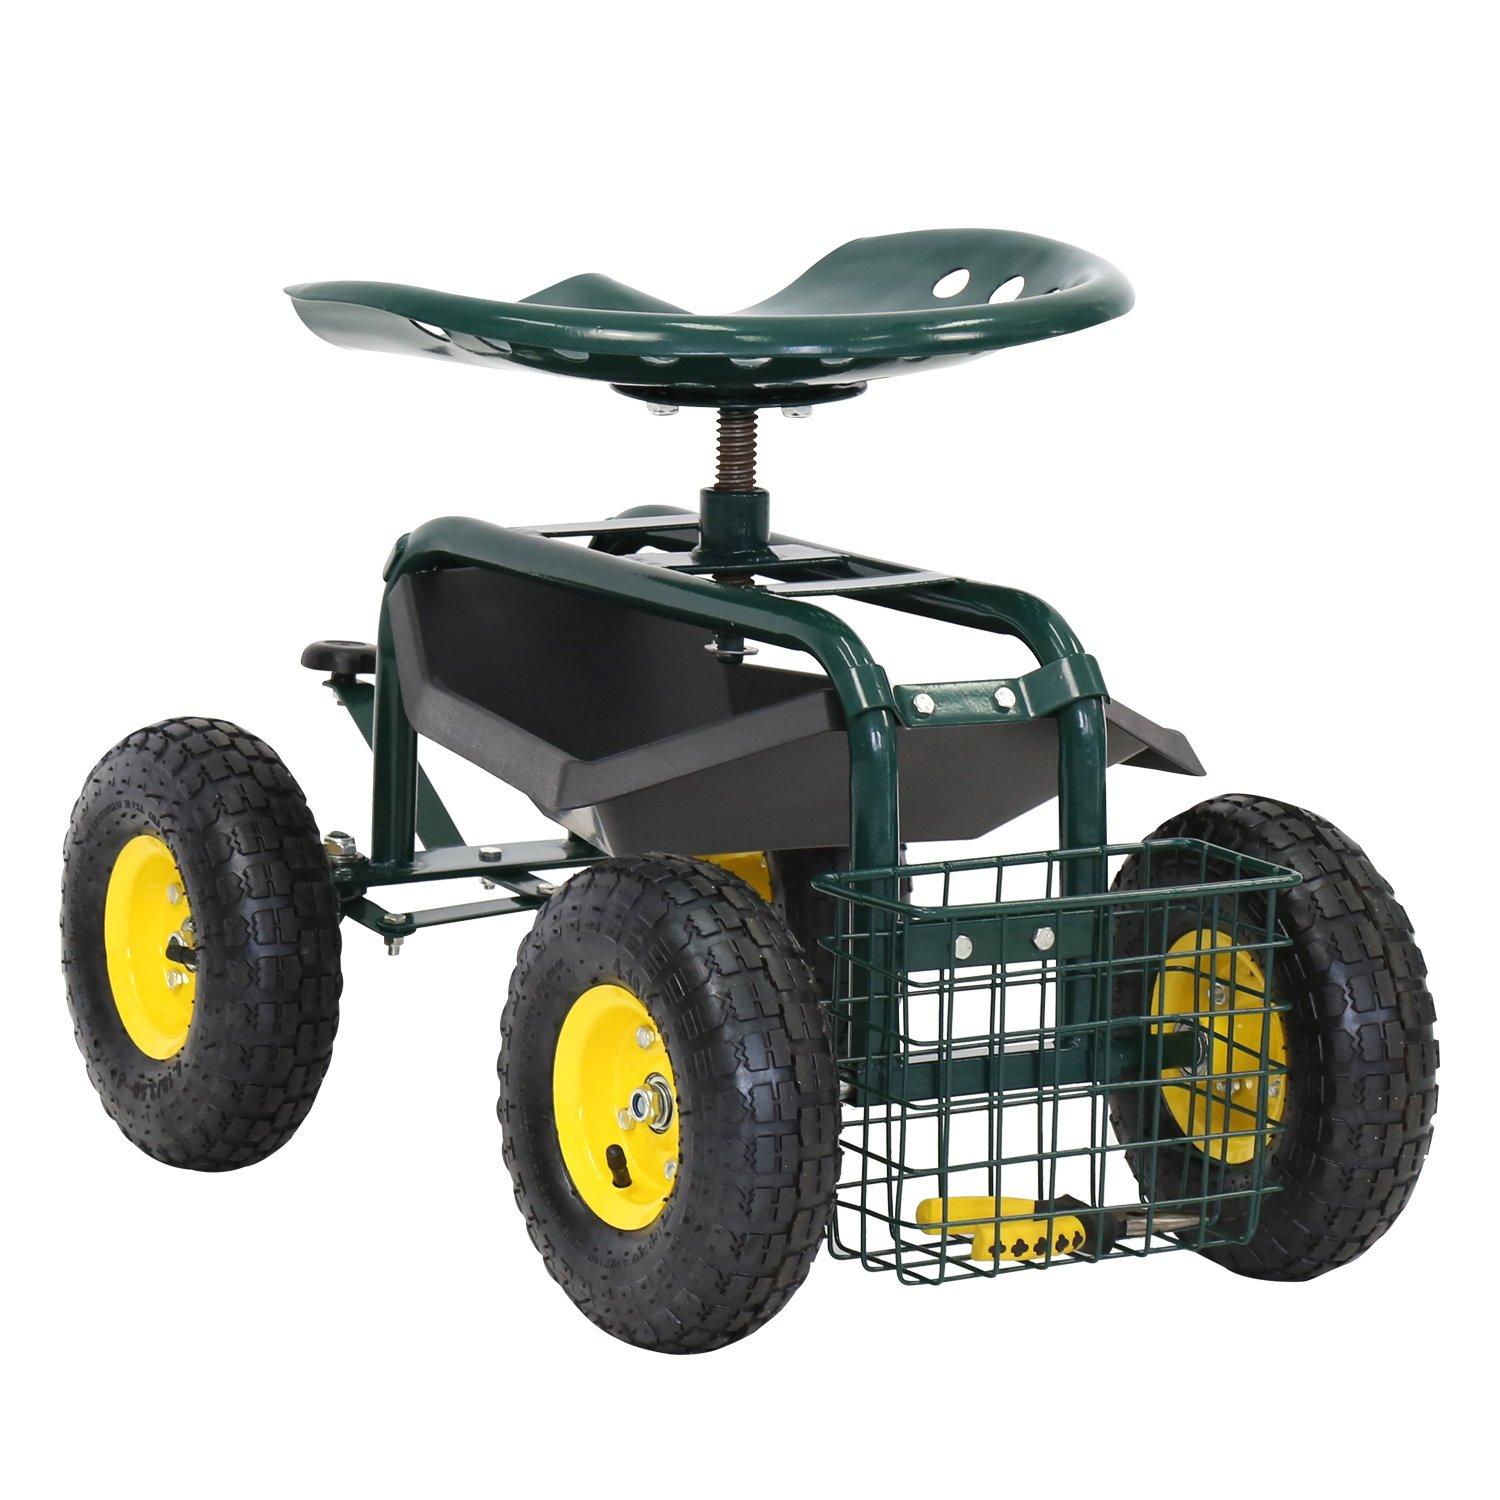 Kinbor Garden Cart Rolling Work Seat with Tool Tray Heavy Duty Gardening Planting New by Kinbor